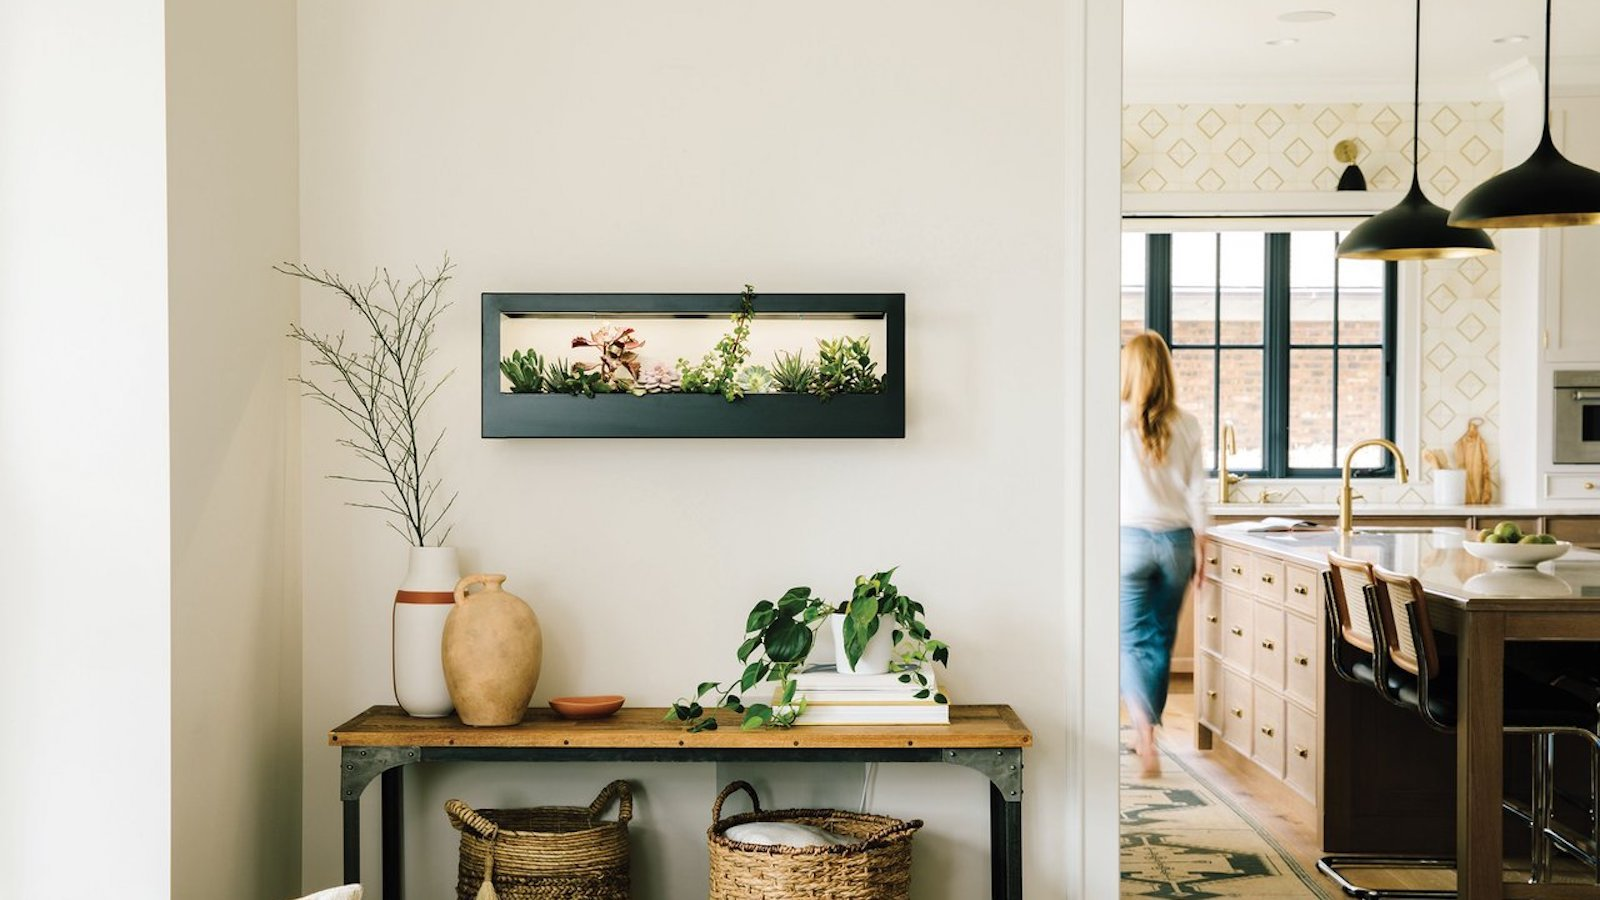 Modern Sprout Smart Landscape Growframe nourishes healthy plants in a picture frame